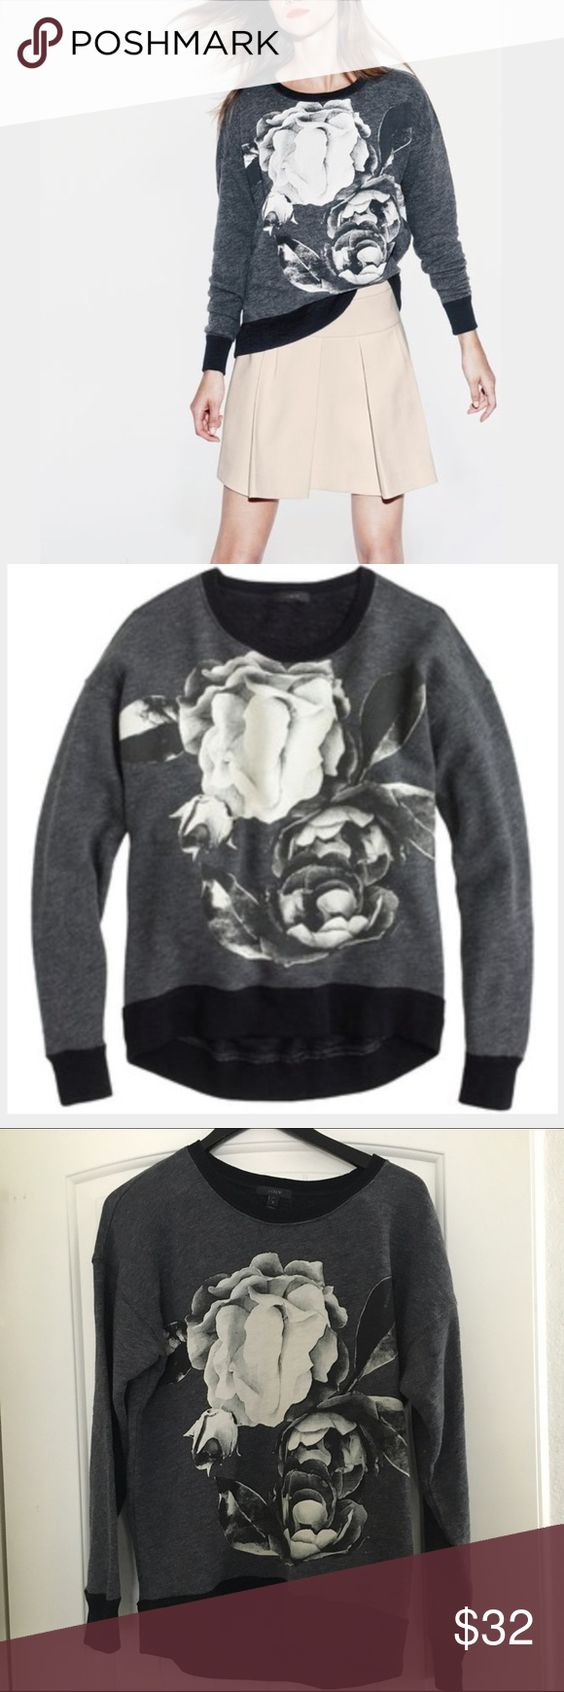 J. Crew sweatshirt with floral graphic Fun sweater shirt by J. Crew with floral graphic printed on the front. Slightly oversized fit. Size small. J. Crew Sweaters Crew & Scoop Necks